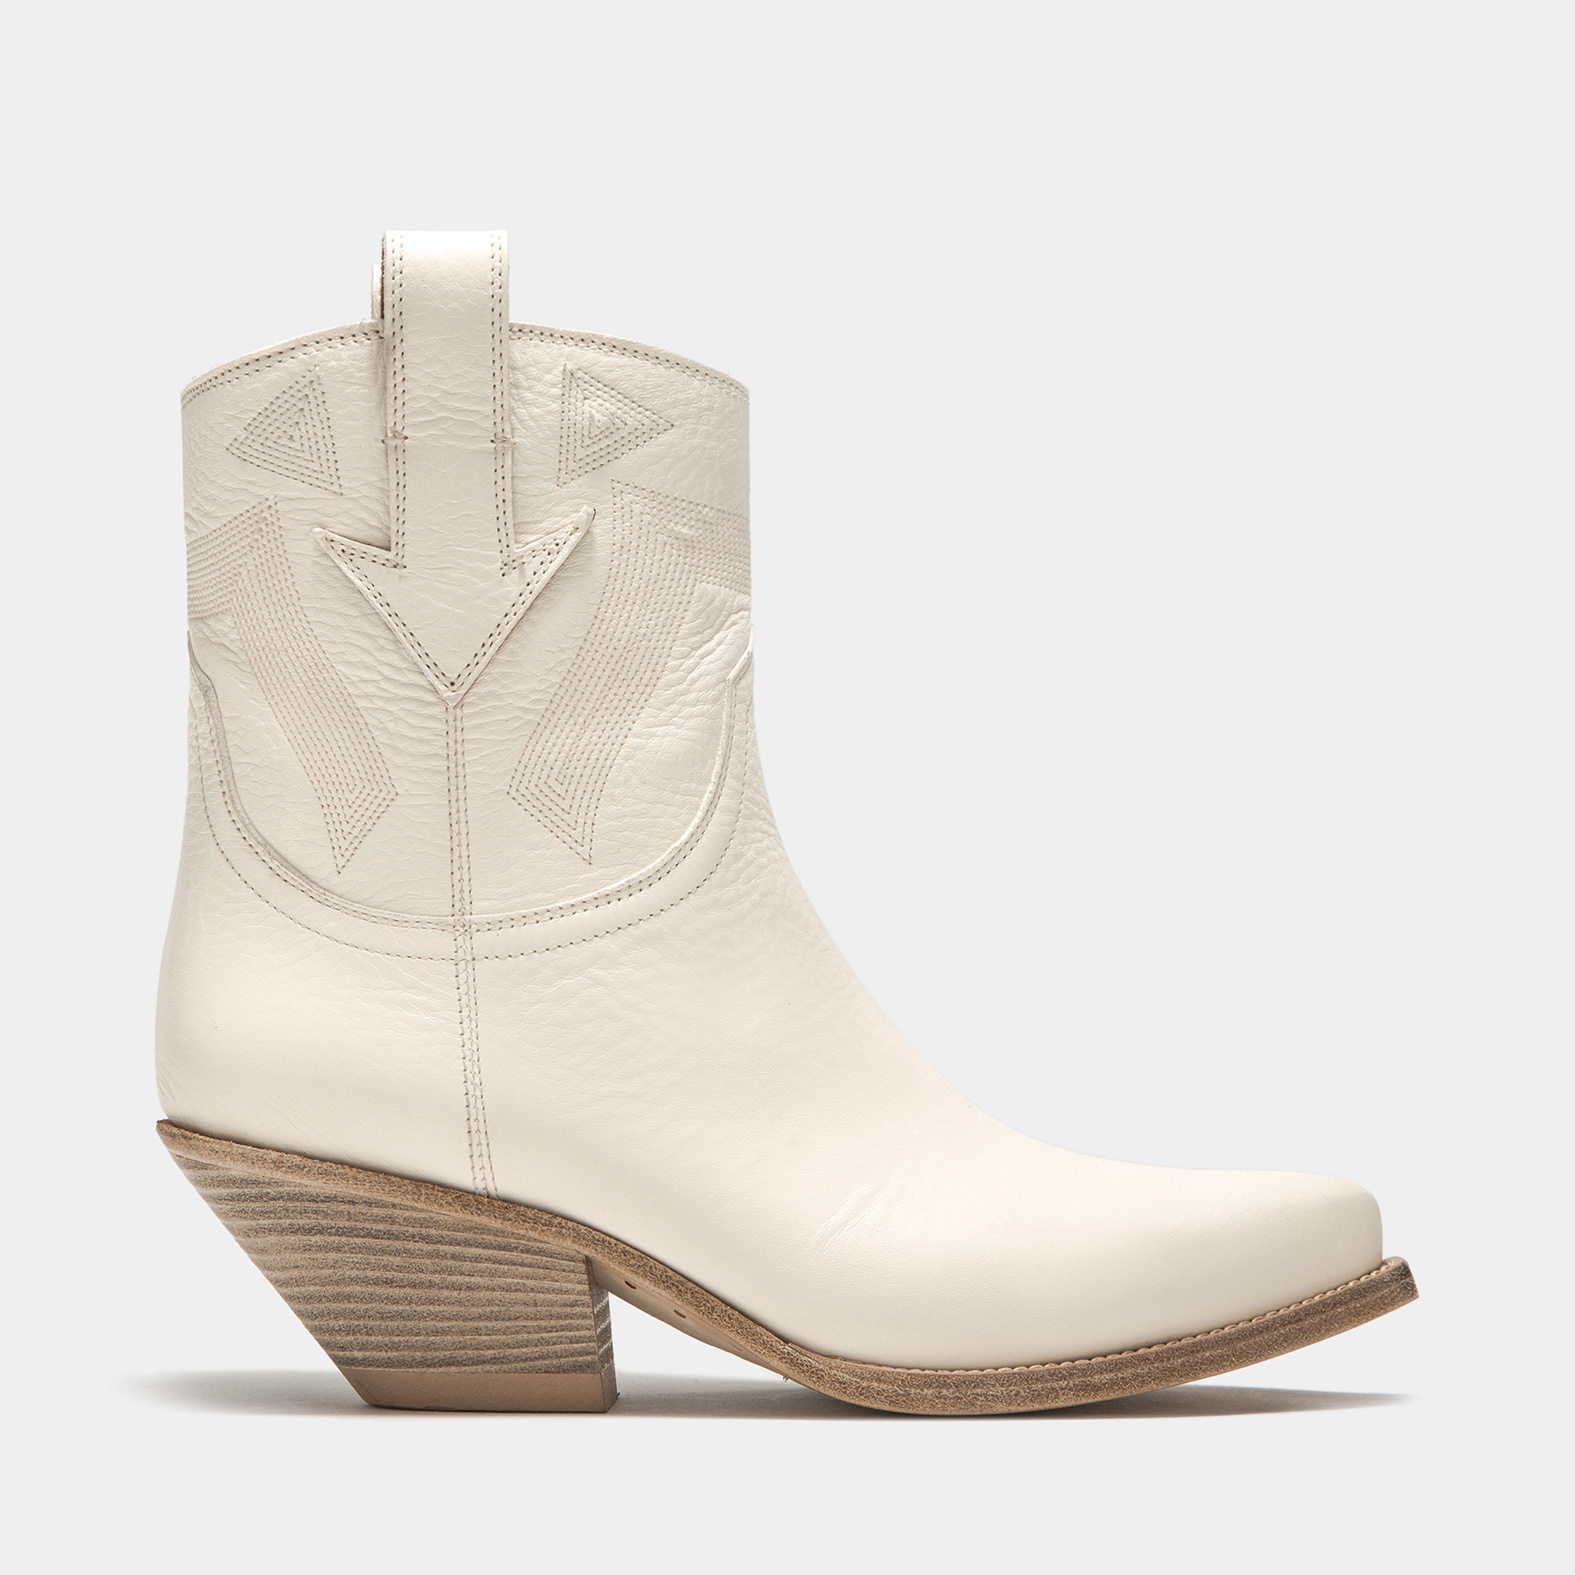 BUTTERO: ELISE MID DURANGO BOOTS IN CREAM WHITE LEATHER